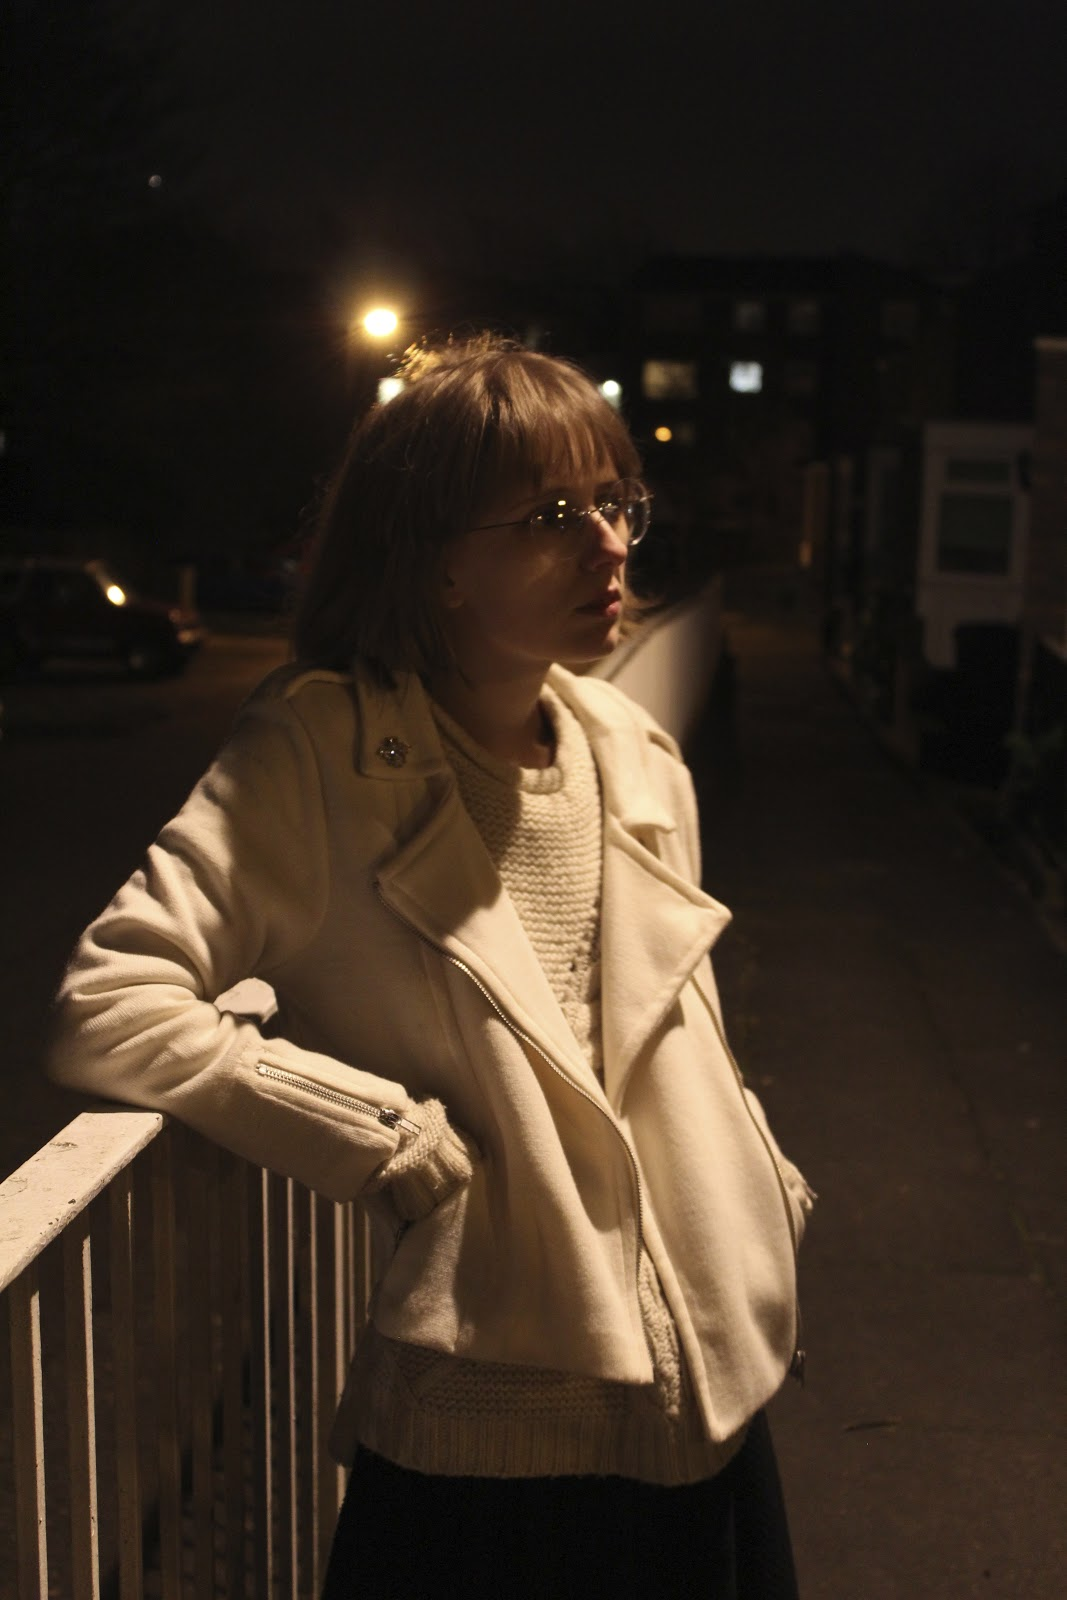 A woman leans against a fence, lit by streetlights overhead.